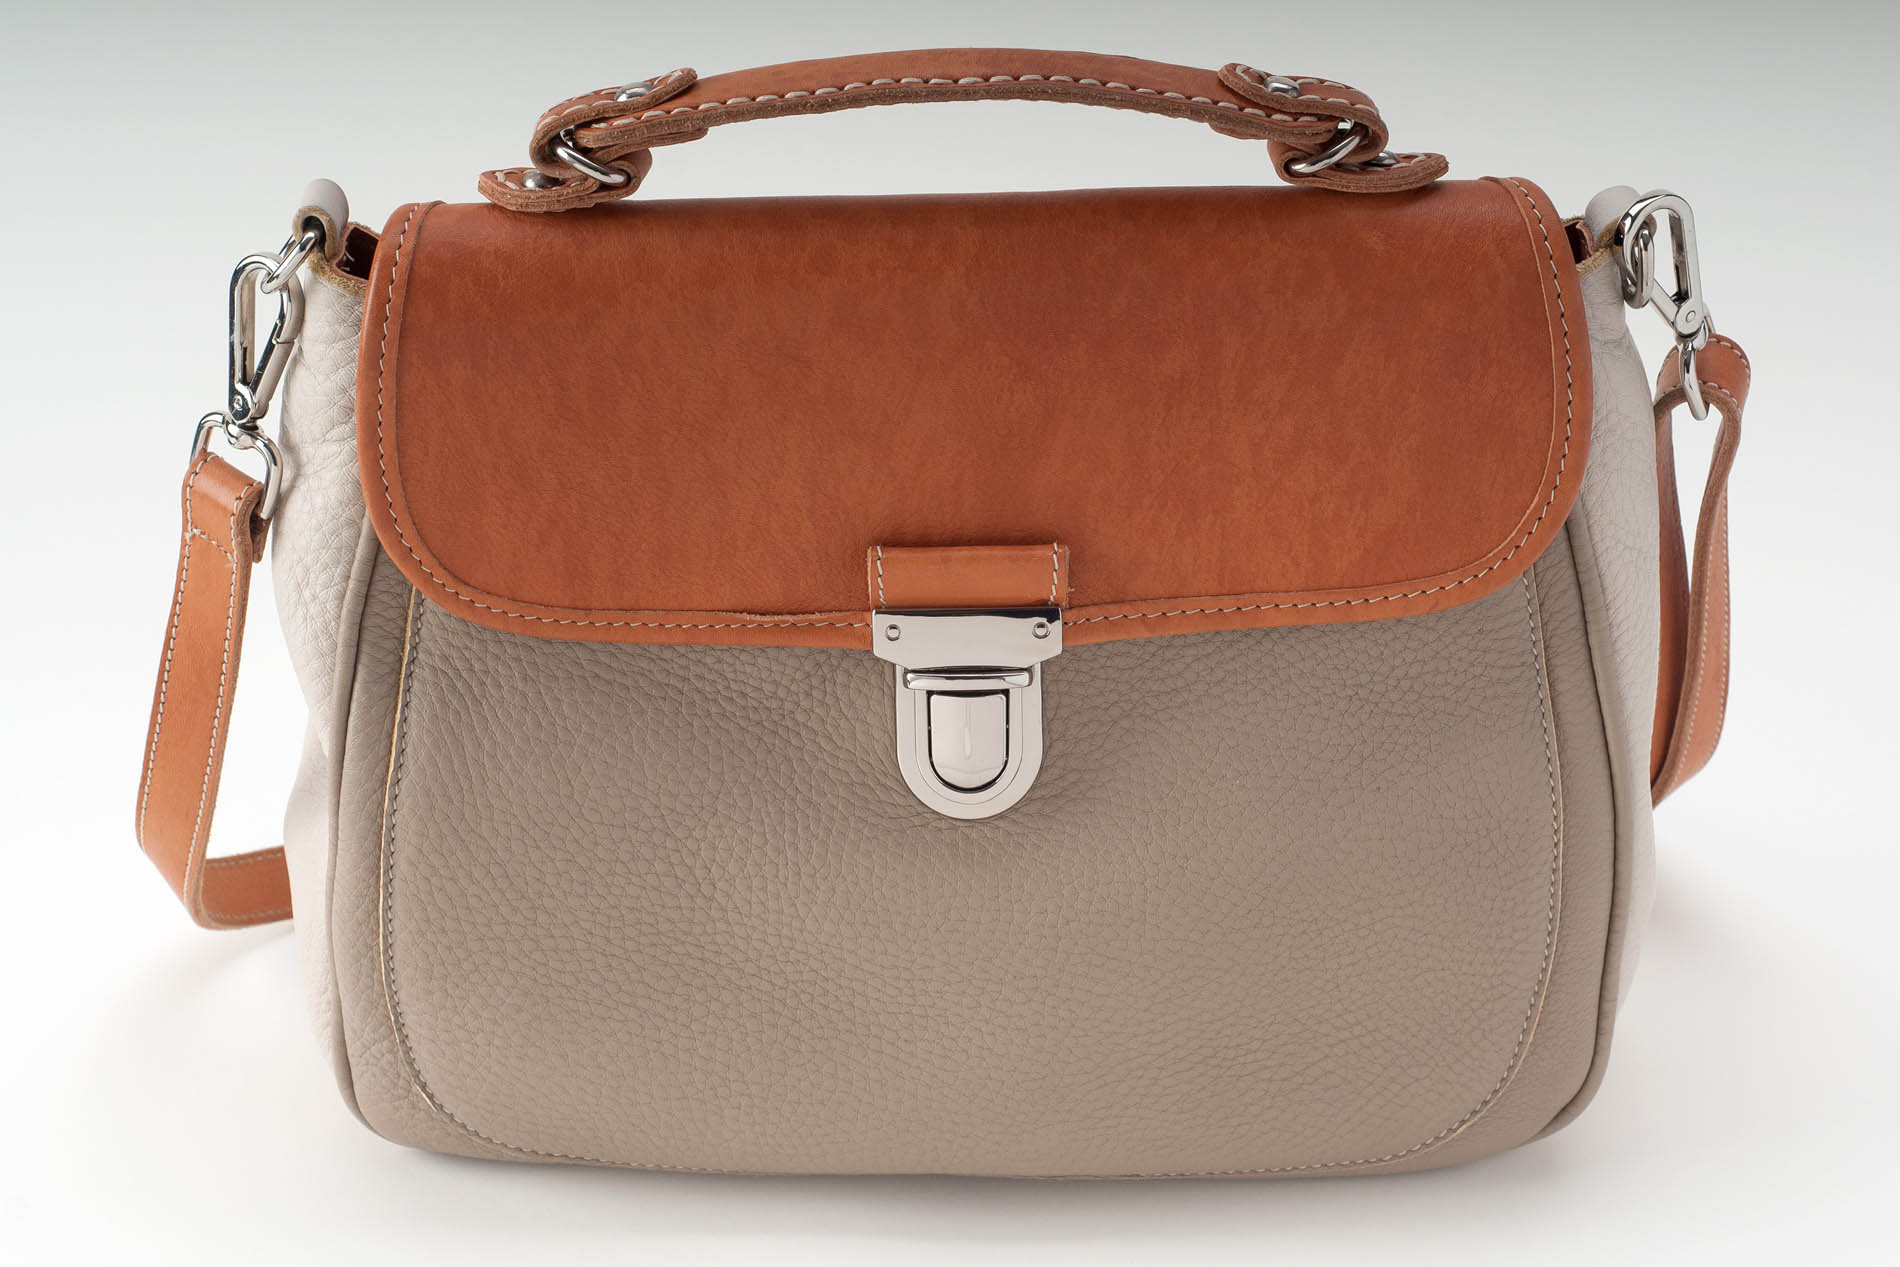 Roots Canada Leather Handbags